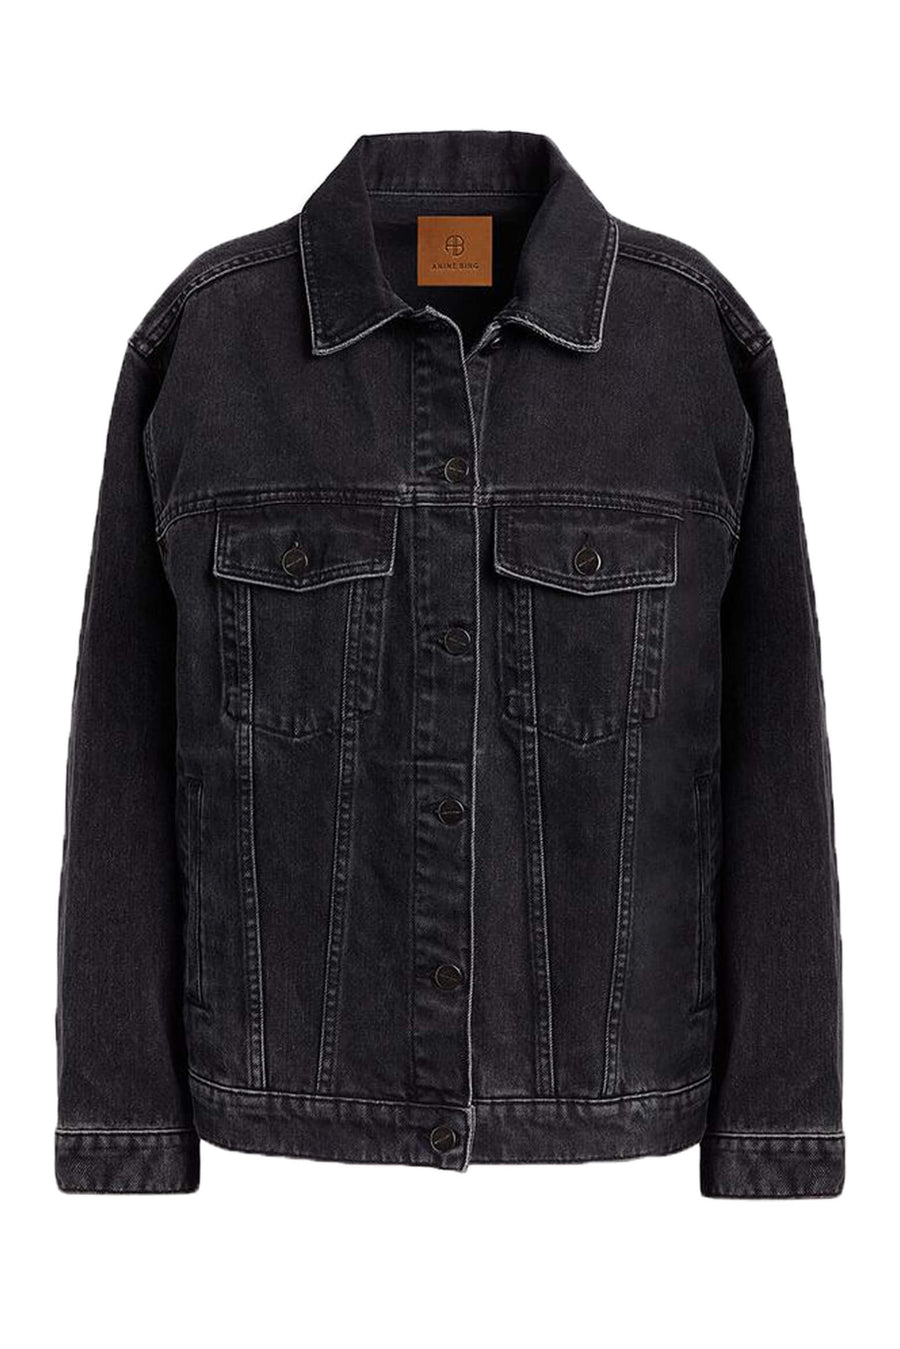 Anine Bing Rory Denim Jacket in Black from The New Trend